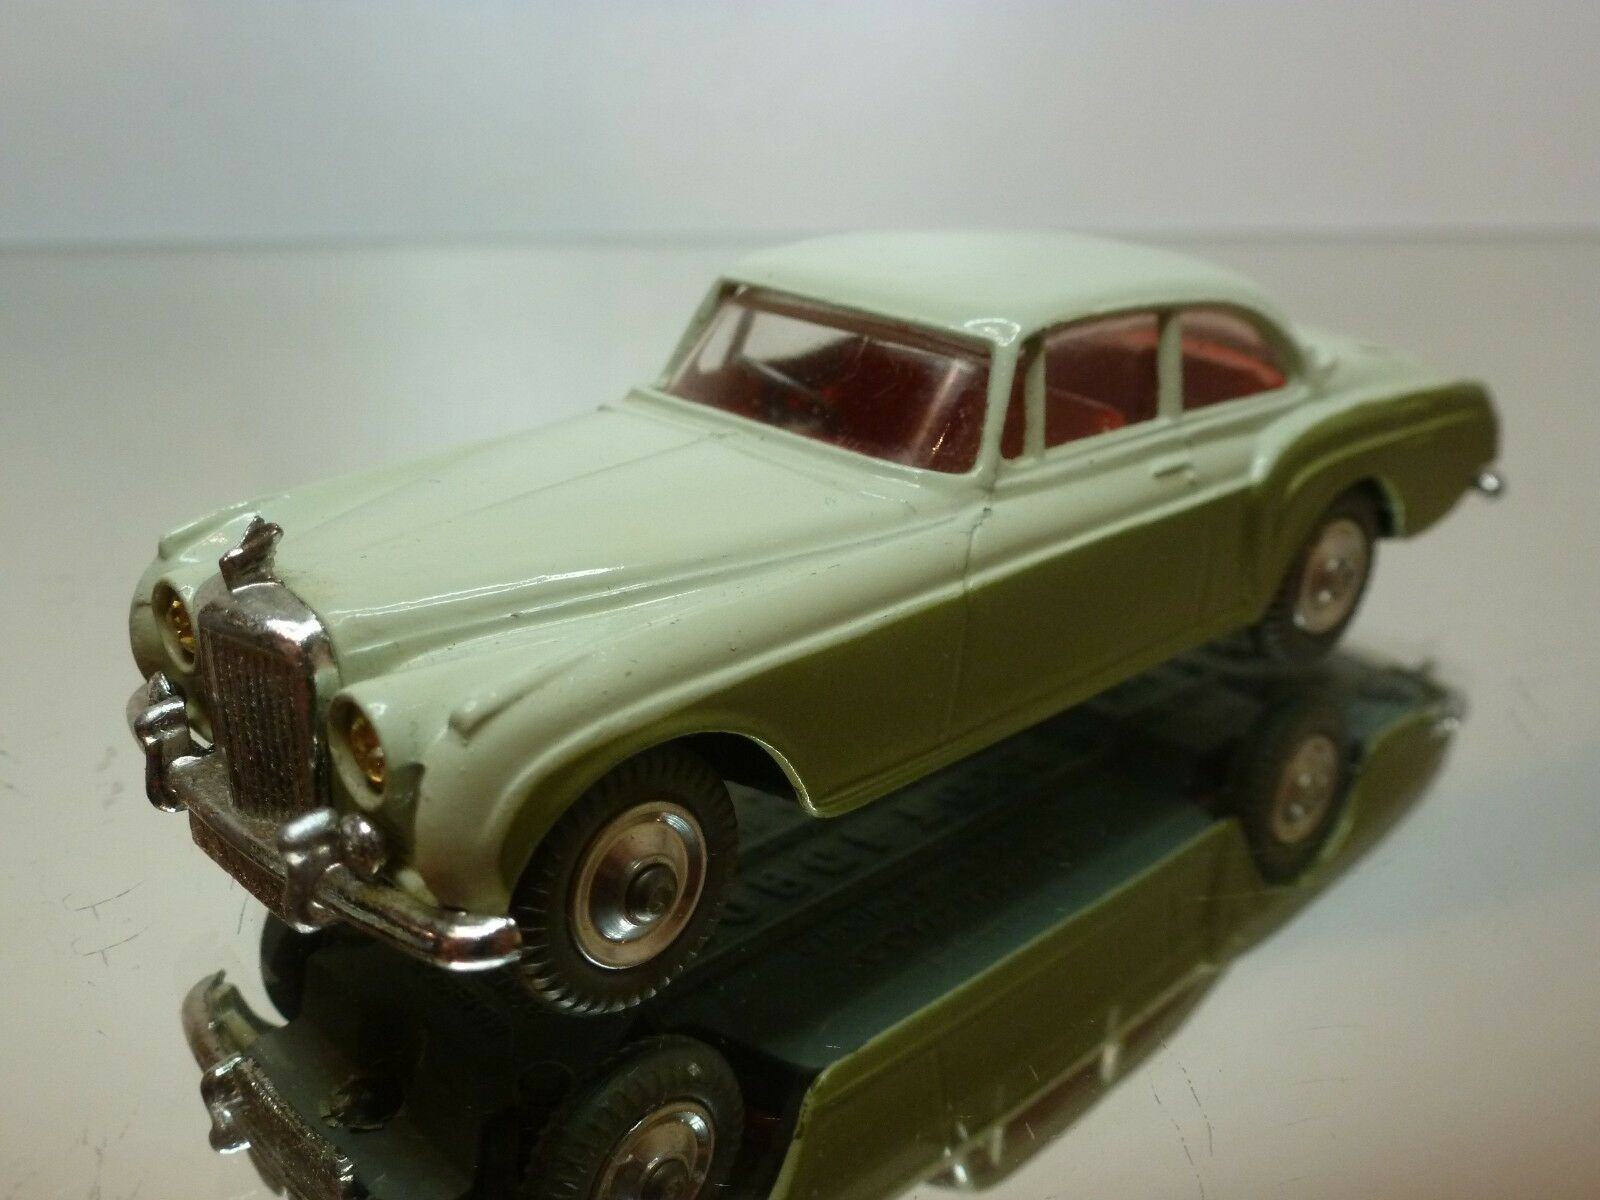 CORGI TOYS 224 BENTLEY CONTINENTAL SPORTS SALOON - RHD - TWO TONE 1 43 - GOOD